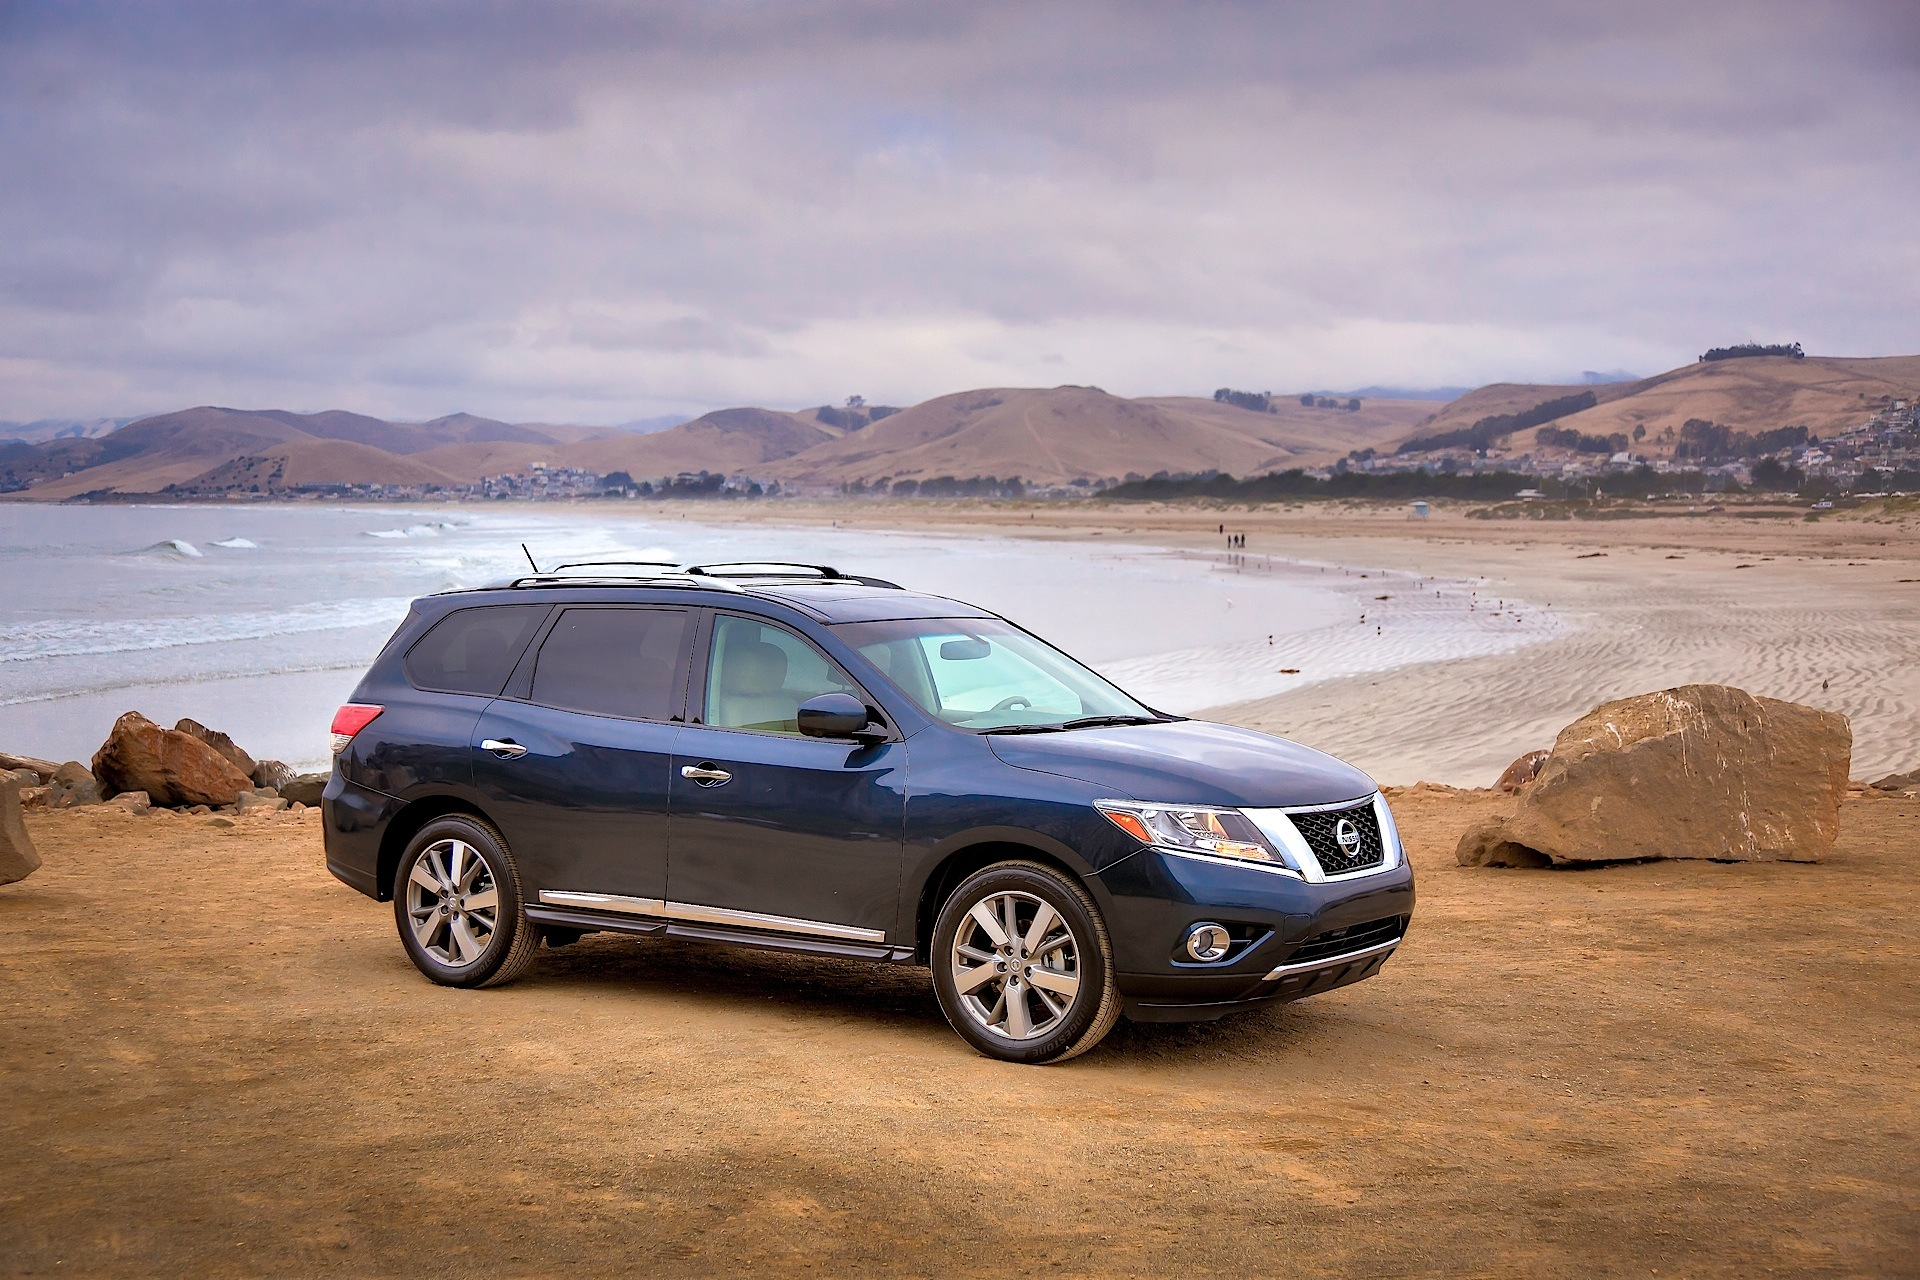 img wallpapers group pathfinder image lifted nissan